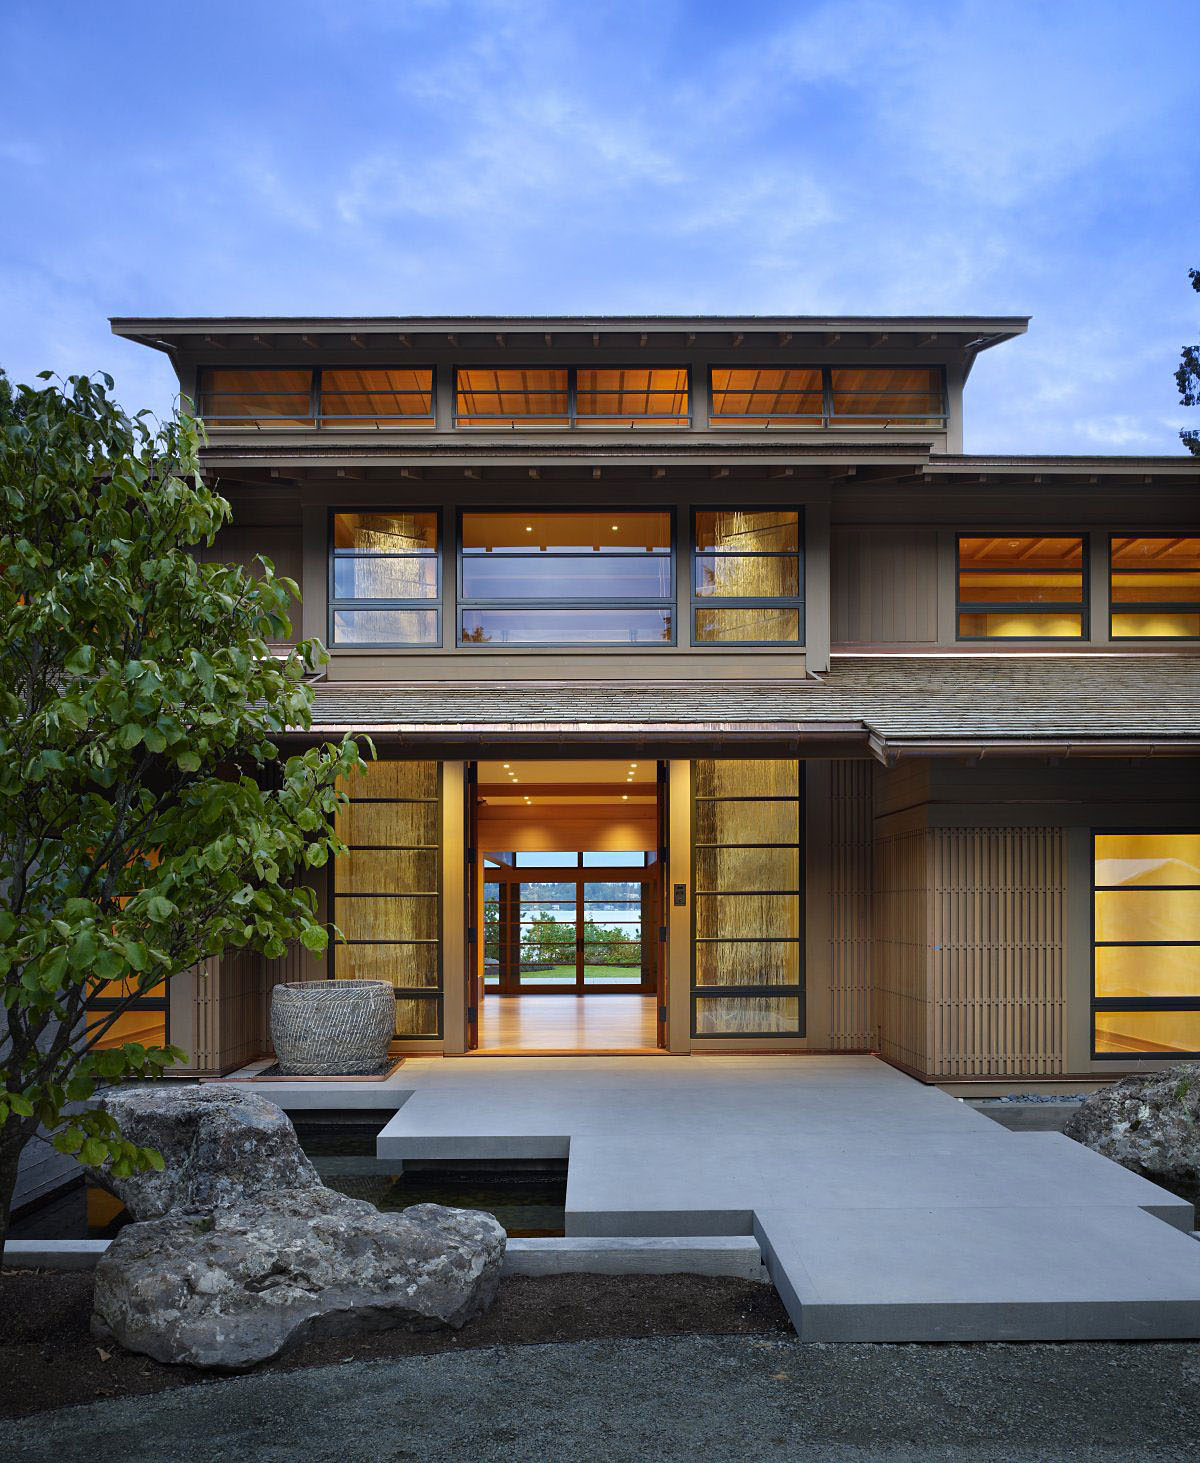 Contemporary House In Seattle With Japanese Influence: contemporary house style